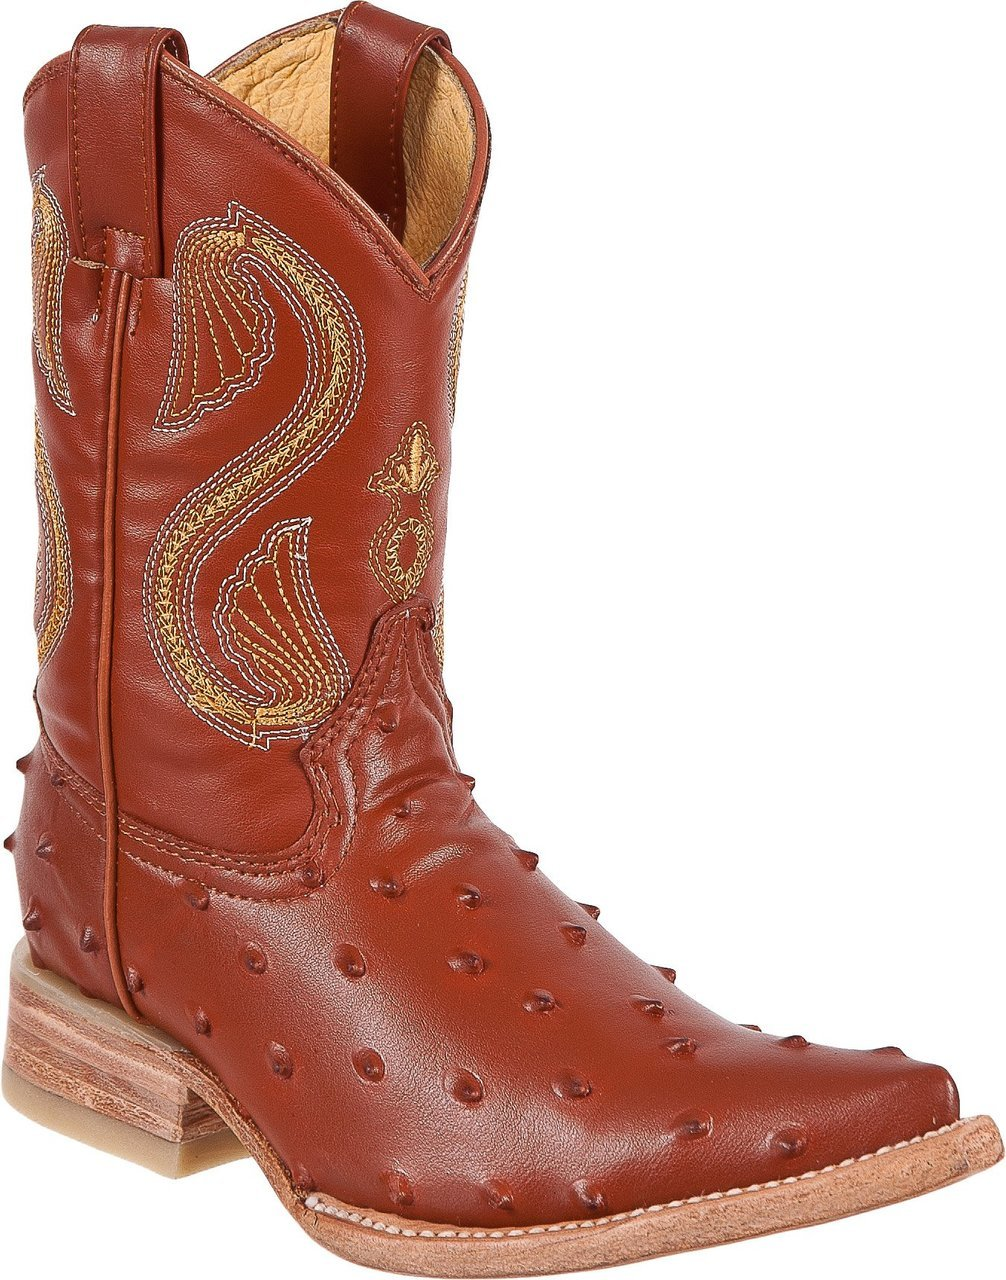 DIEGO'S Kids' Cognac Ostrich Print Boots - Ch Toe